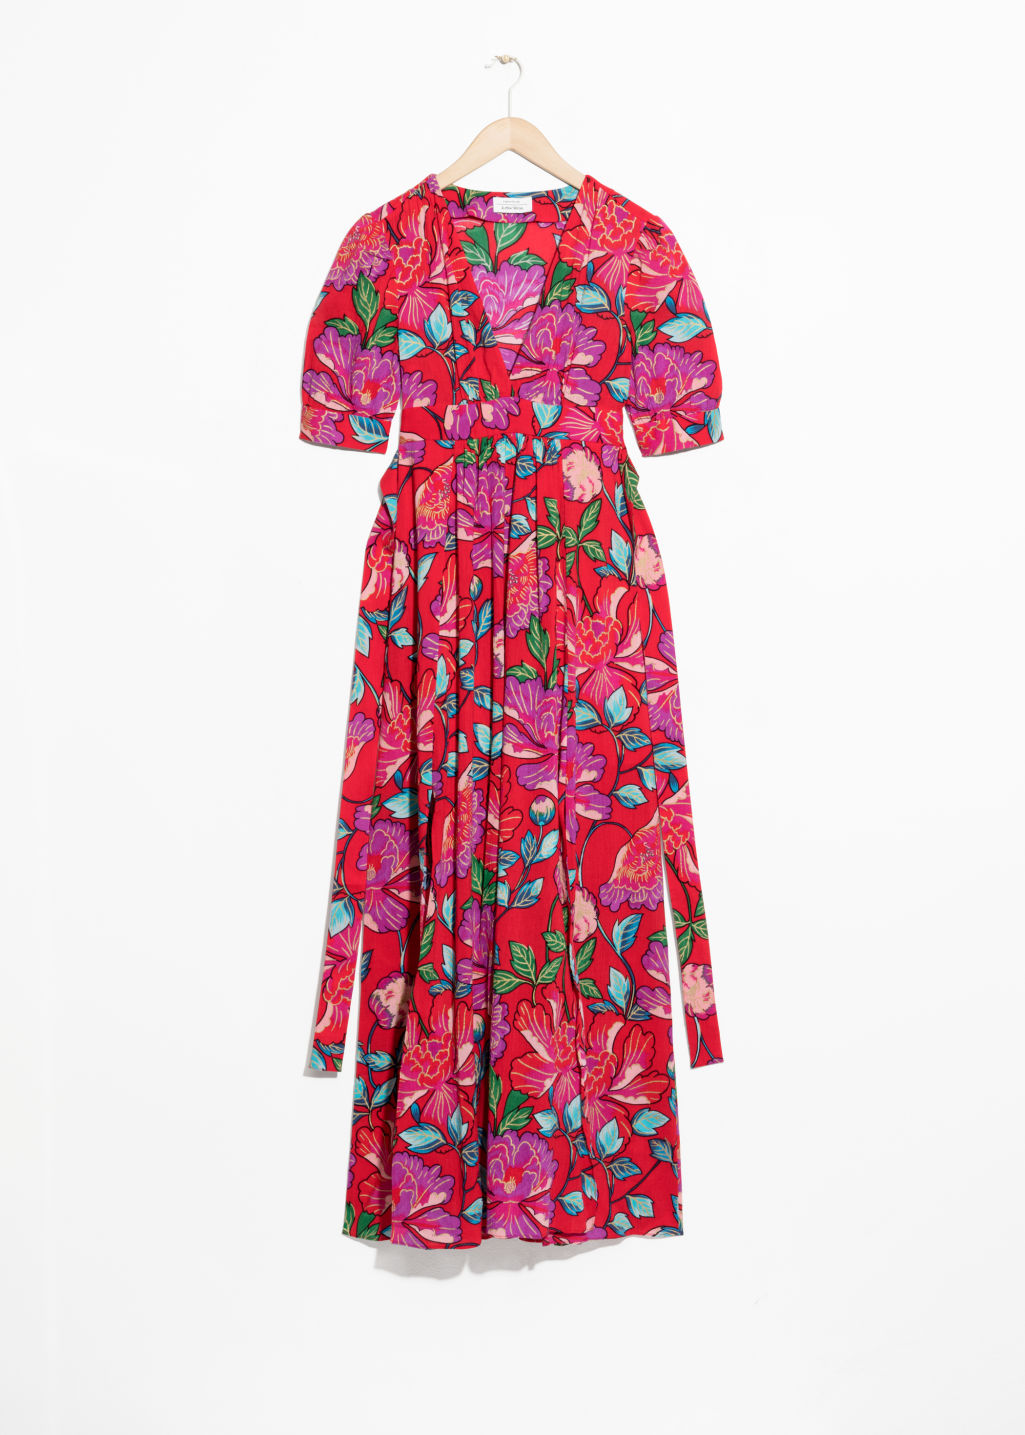 rencontrer de033 40a41 Floral Printed Dress - Red - Maxi dresses - & Other Stories